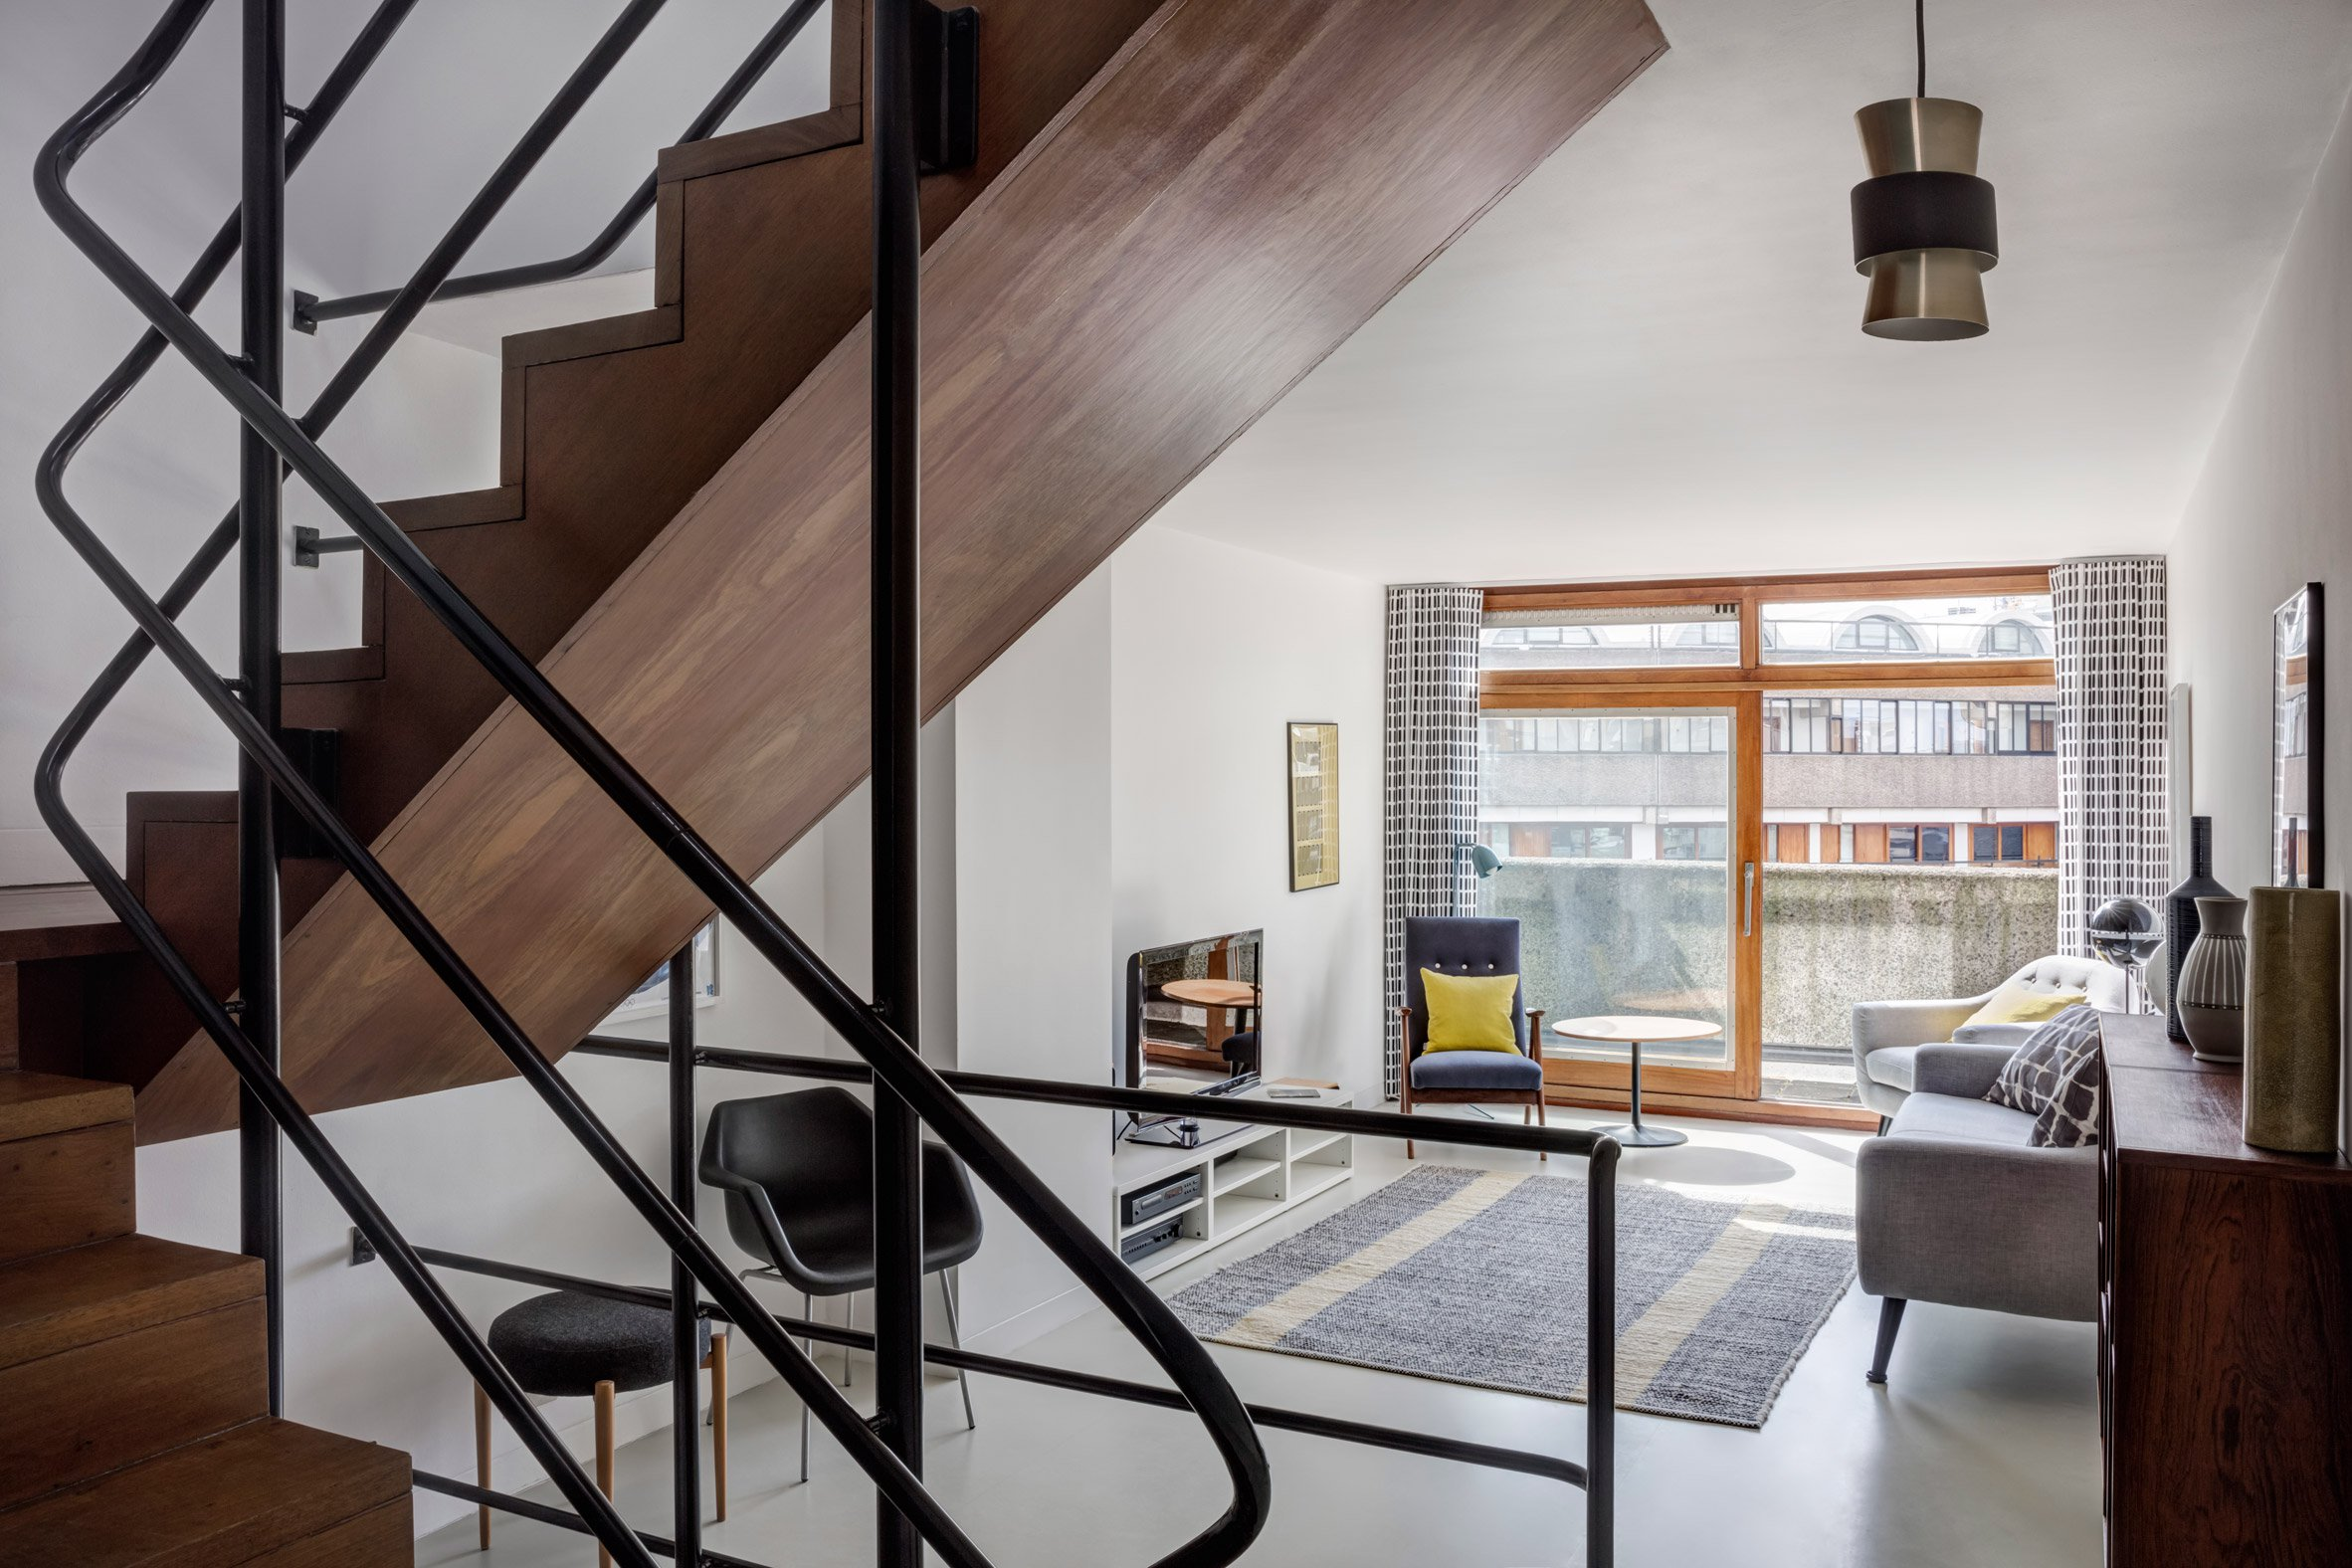 Renovated 1950s apartment glows anew in a London Brutalist icon